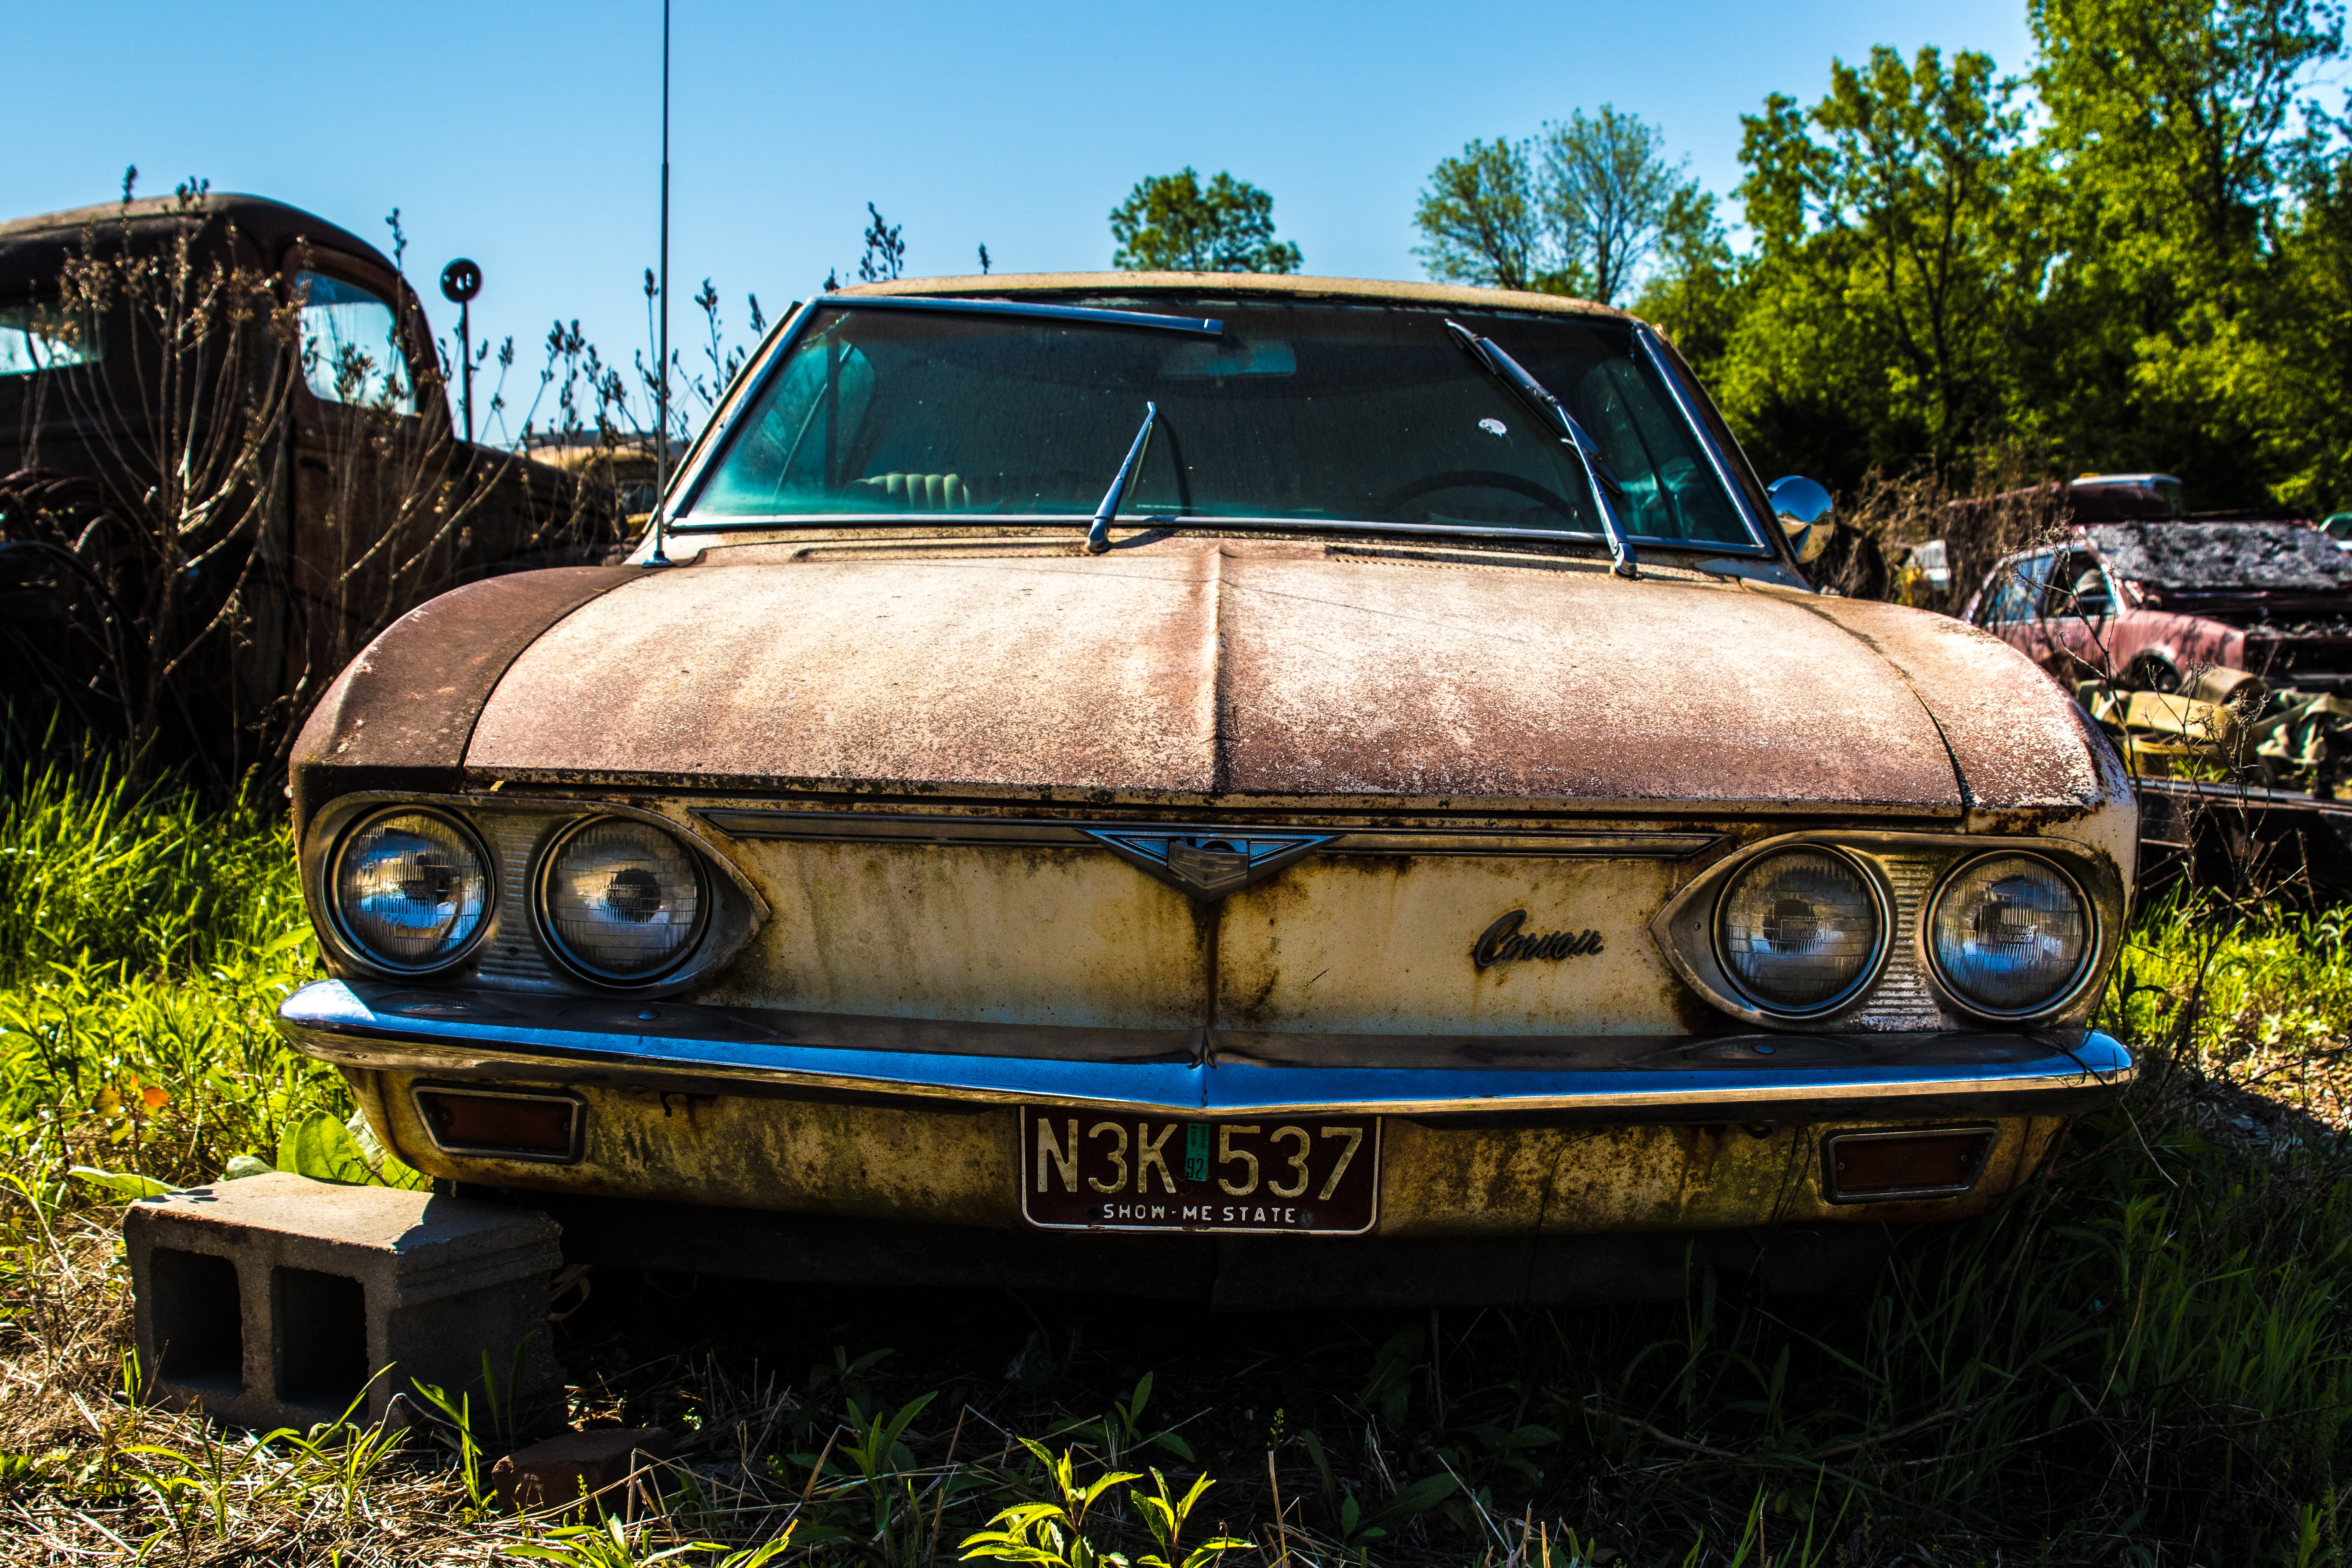 Front of a rusty, abandoned Fender with a license plate and headlights in a car junkyard